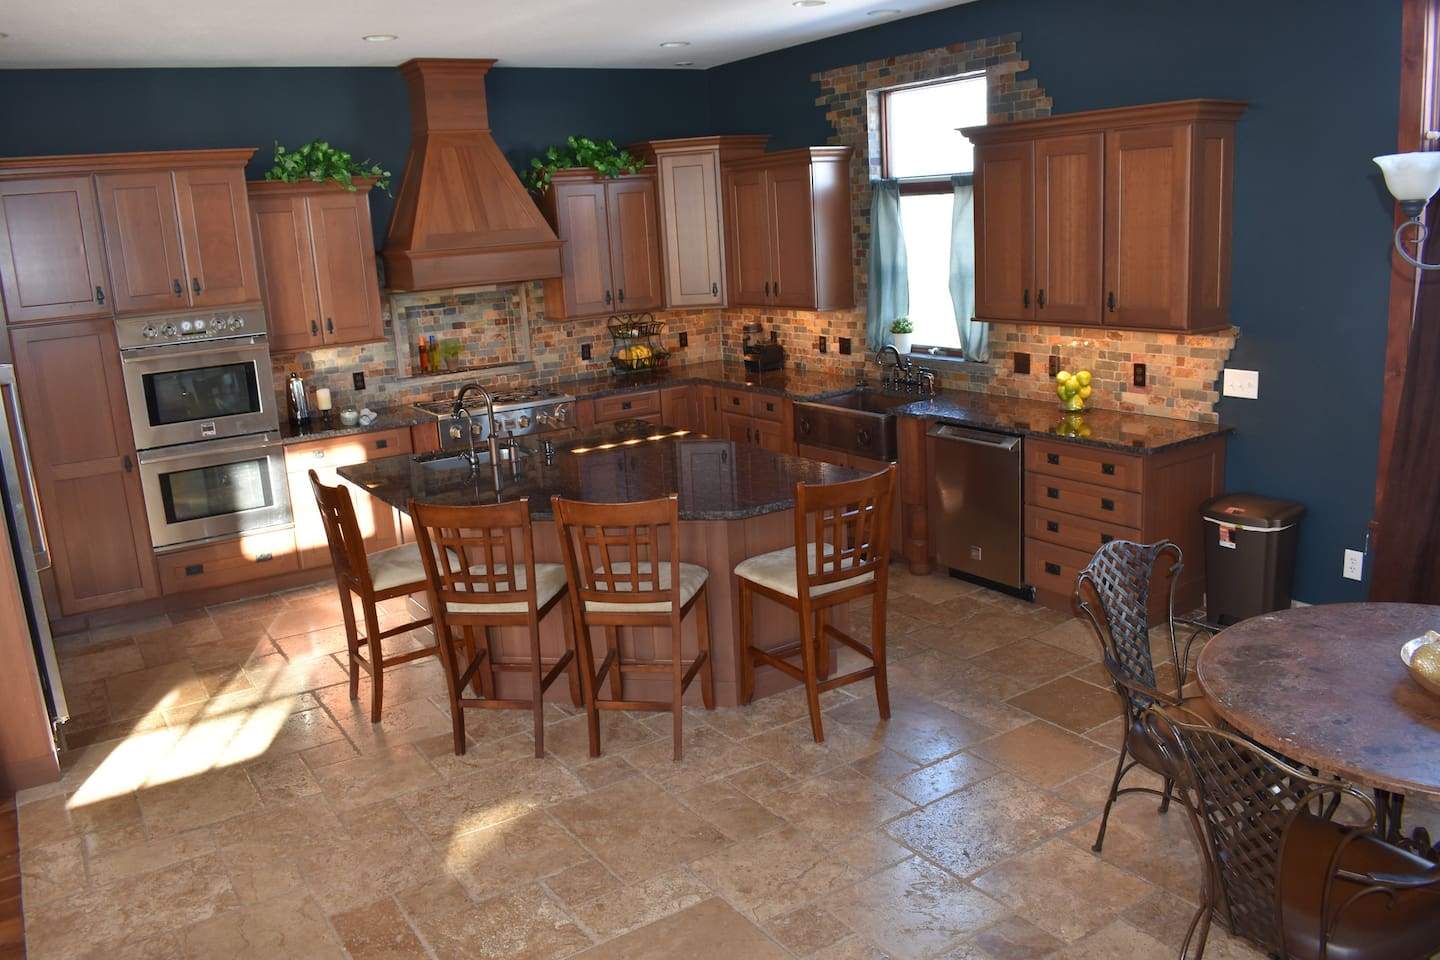 Large welcoming kitchen with ample  granite counter space, double ovens, gas cooktop, & 2 sinks including the large hand hammered copper sink